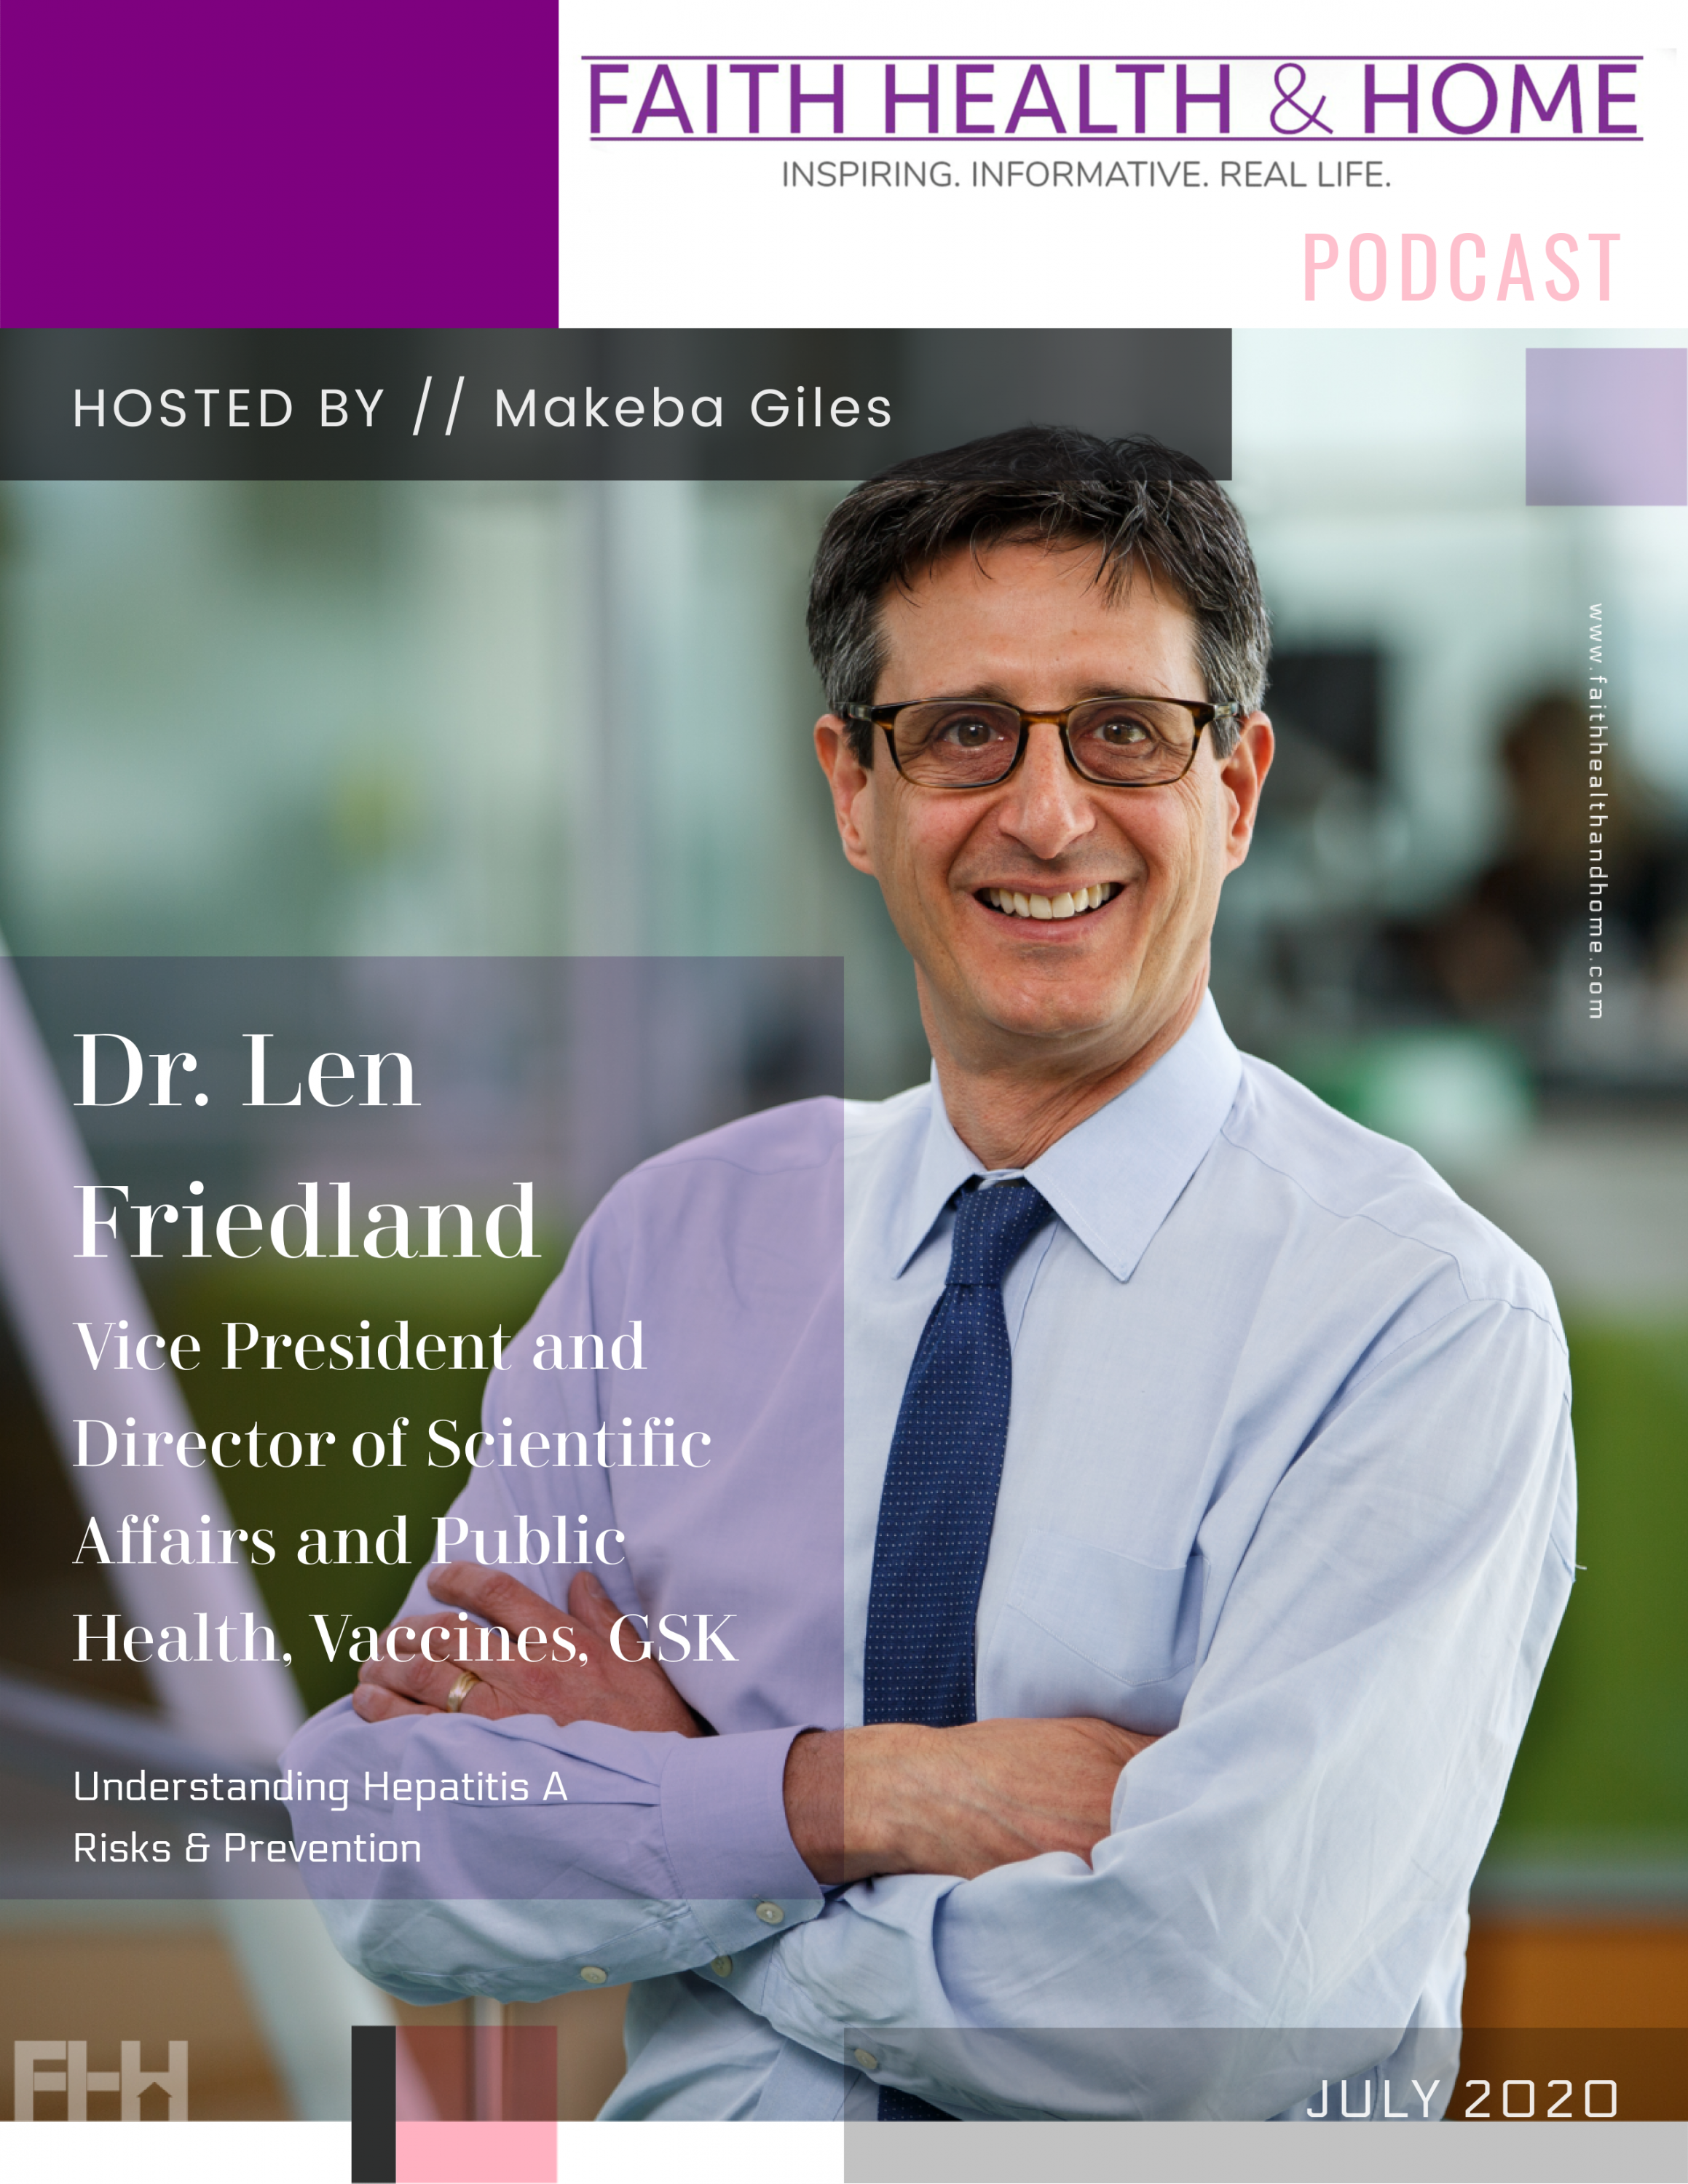 len friedland Vice President and Director of Scientific Affairs and Public Health interview faith health and home podcast makeba giles